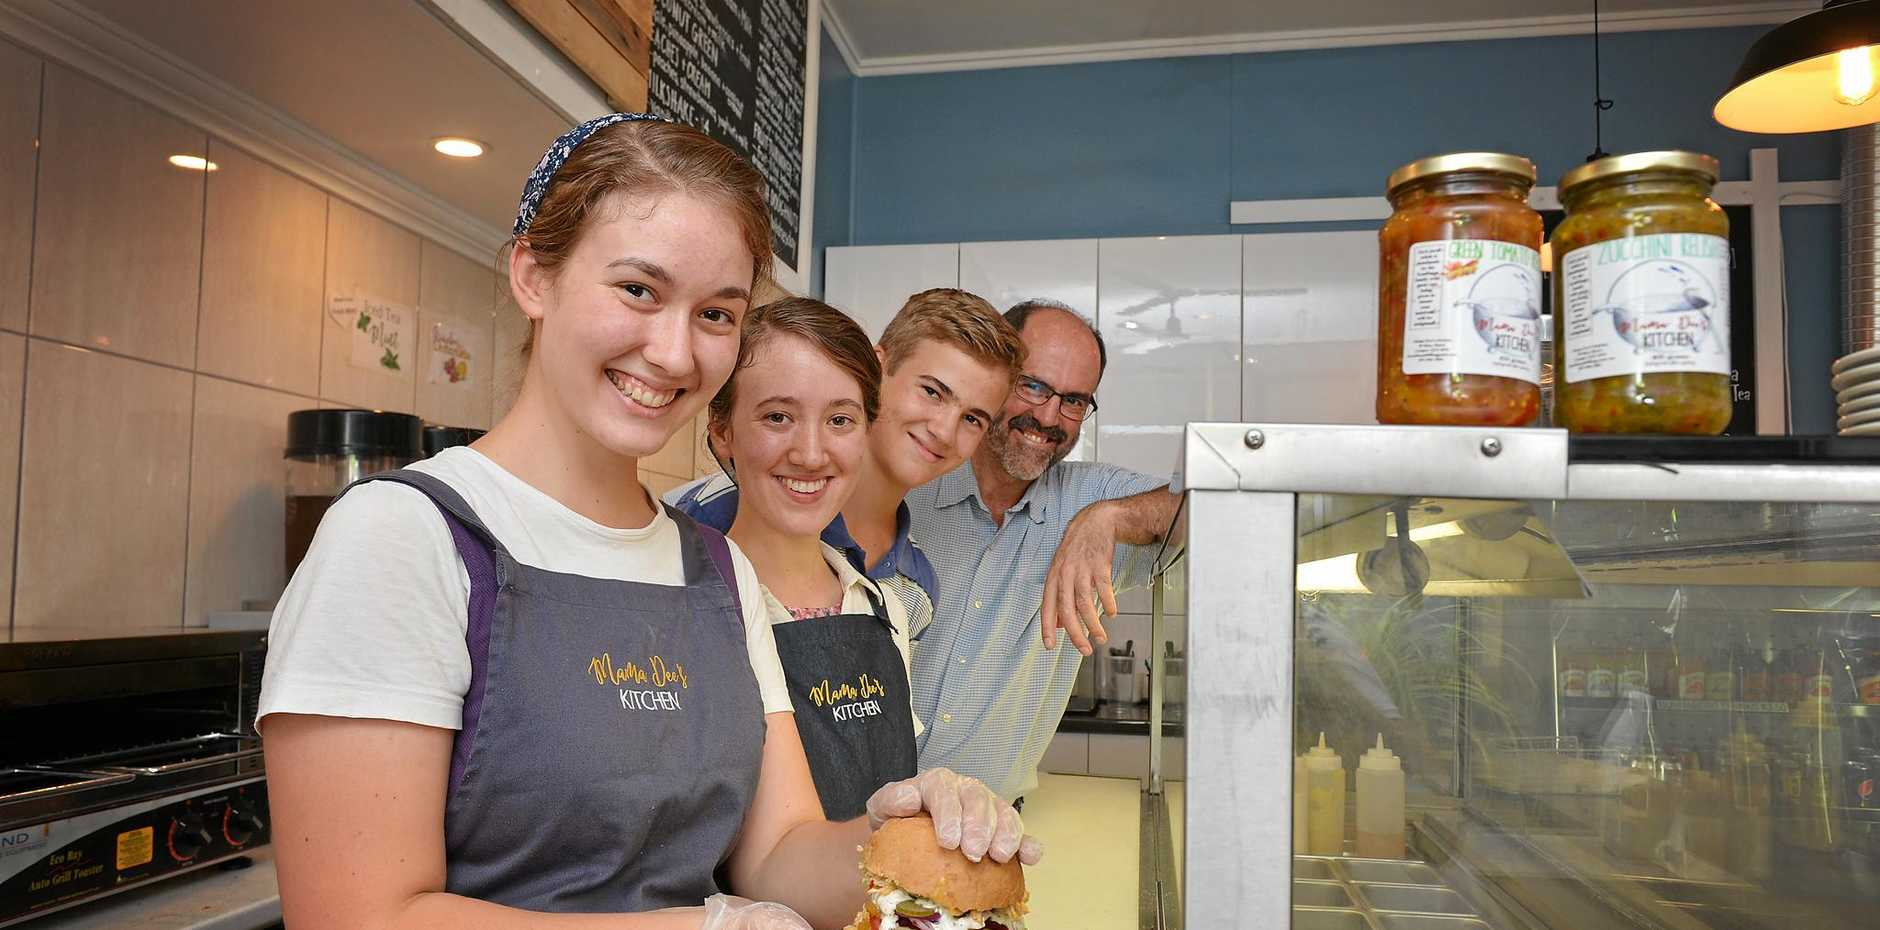 OUR FUTURE: BethAnn, Janae, Matthias and Jason Kauffman from new Mary St business Mamma Dee's Kitchen are part of the wave of young settlers moving to Gympie and helping diversify its economy.